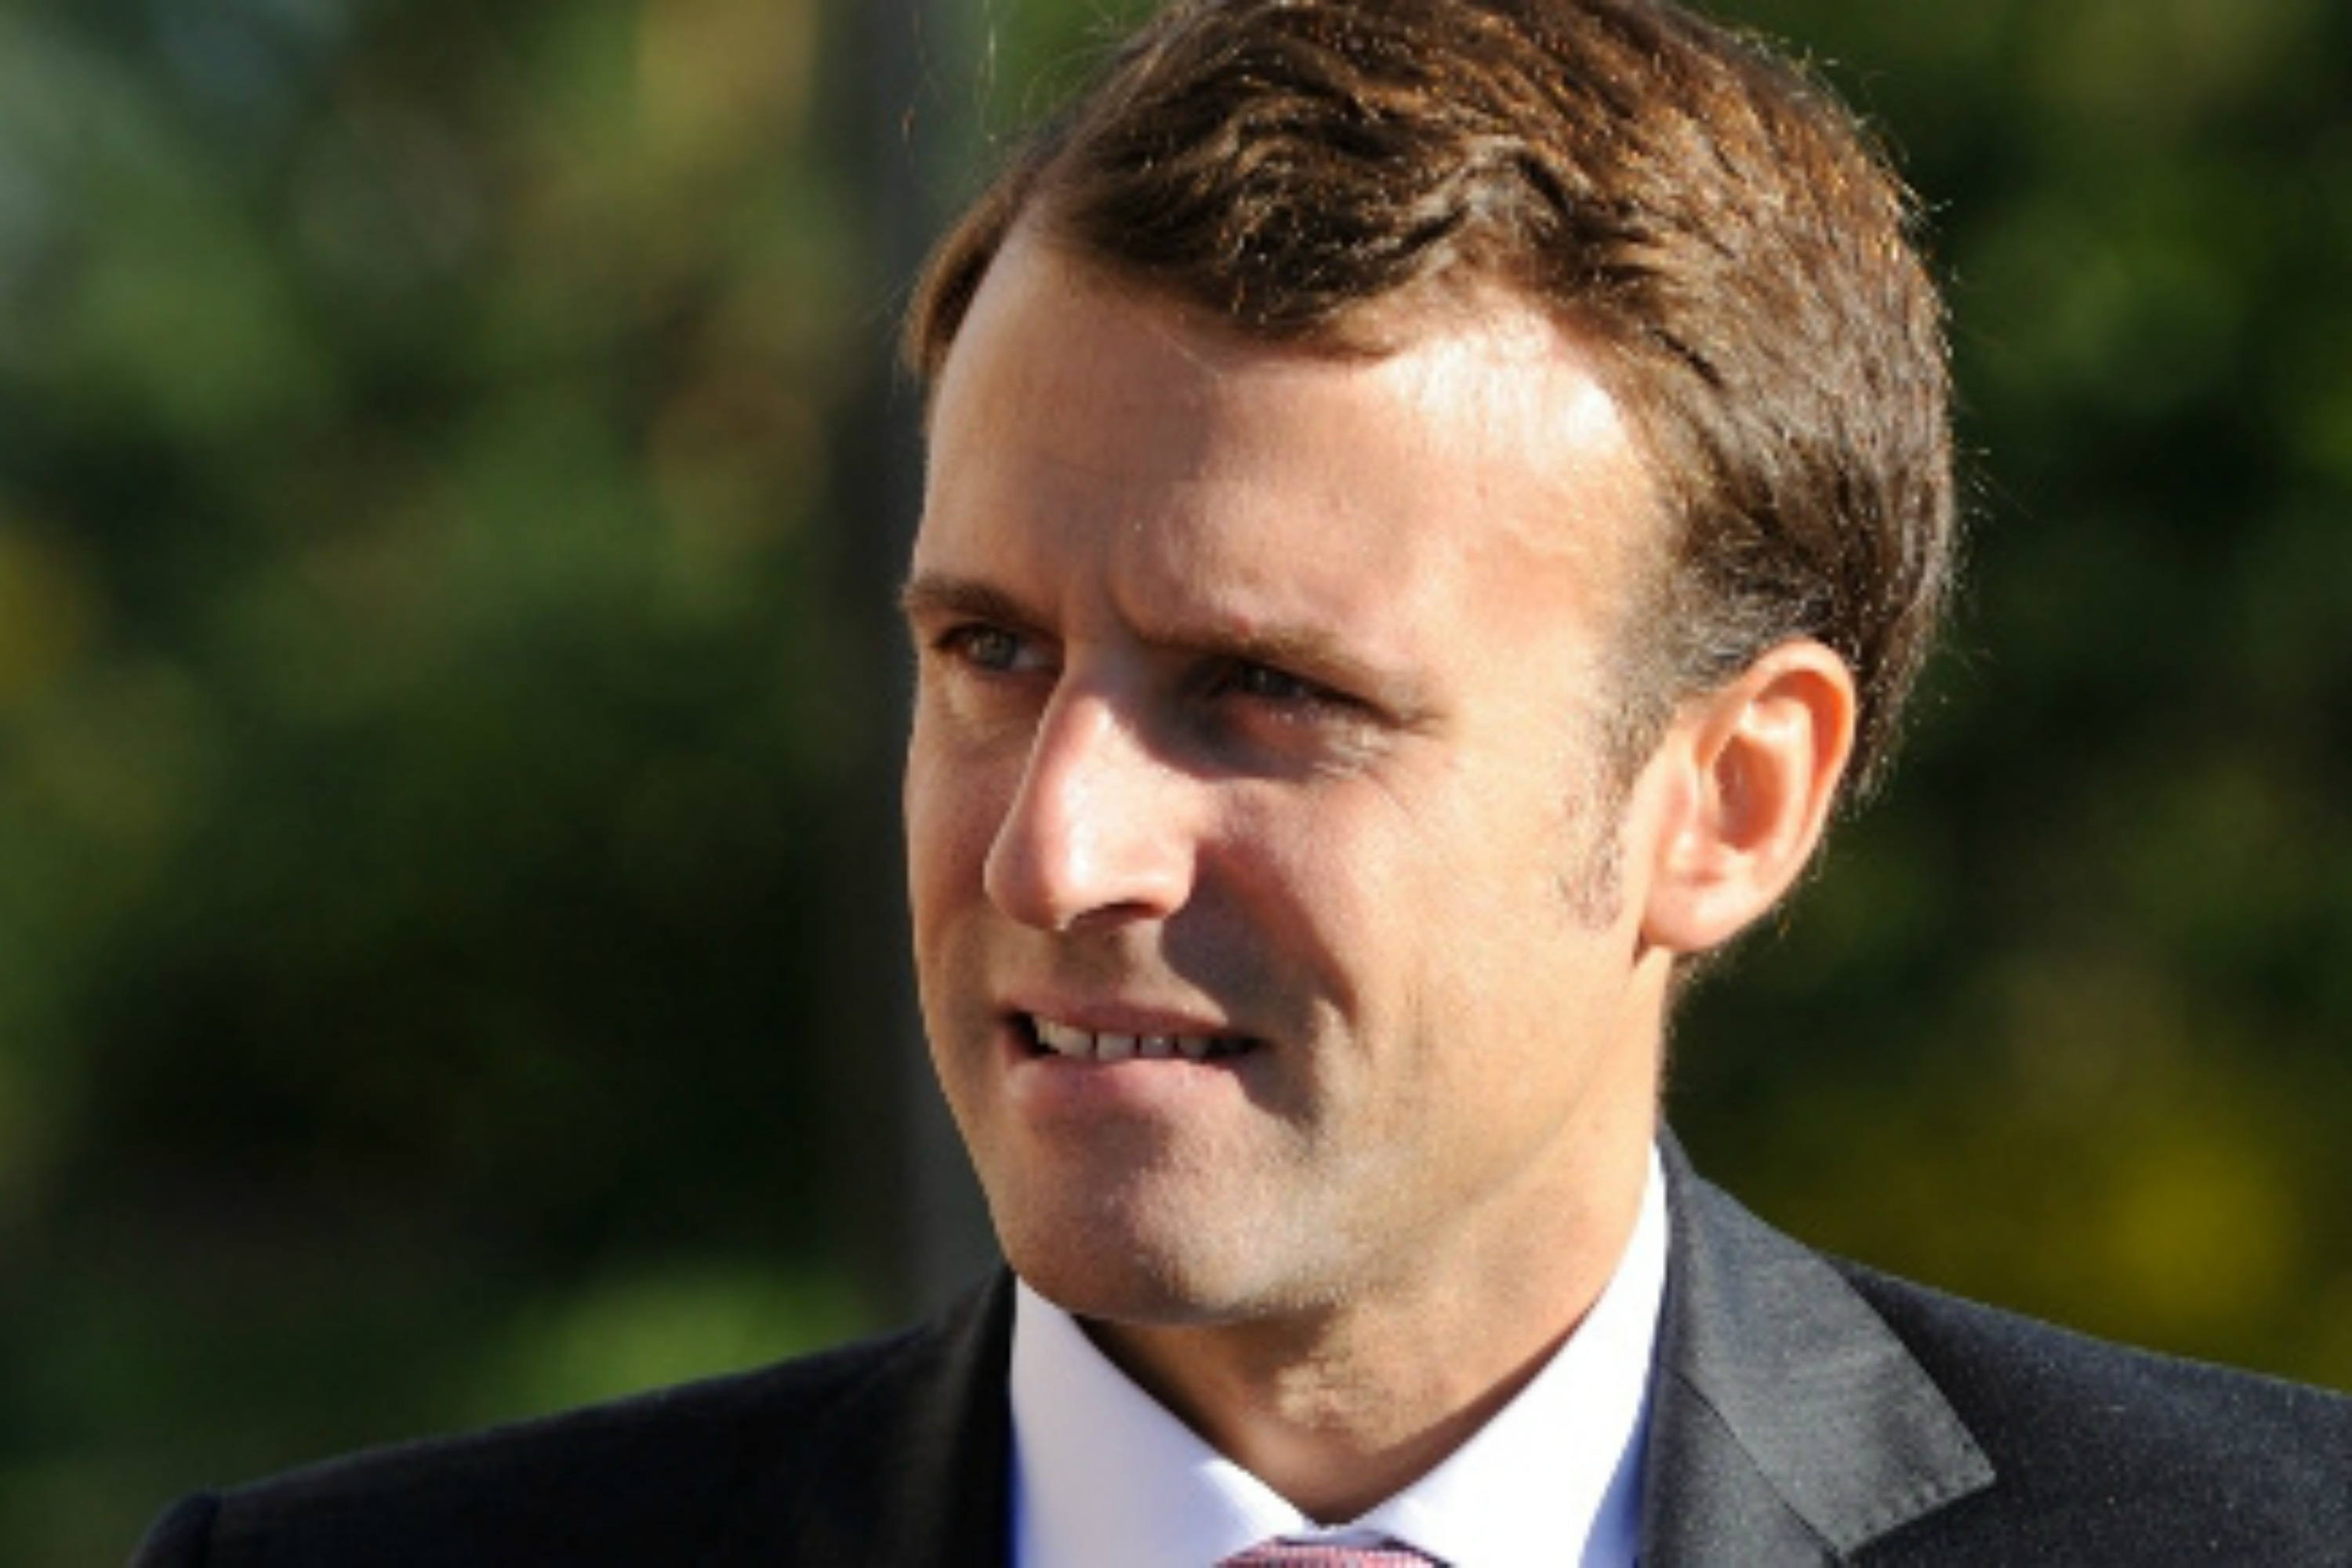 Emmanuel Macron. Photo: French government